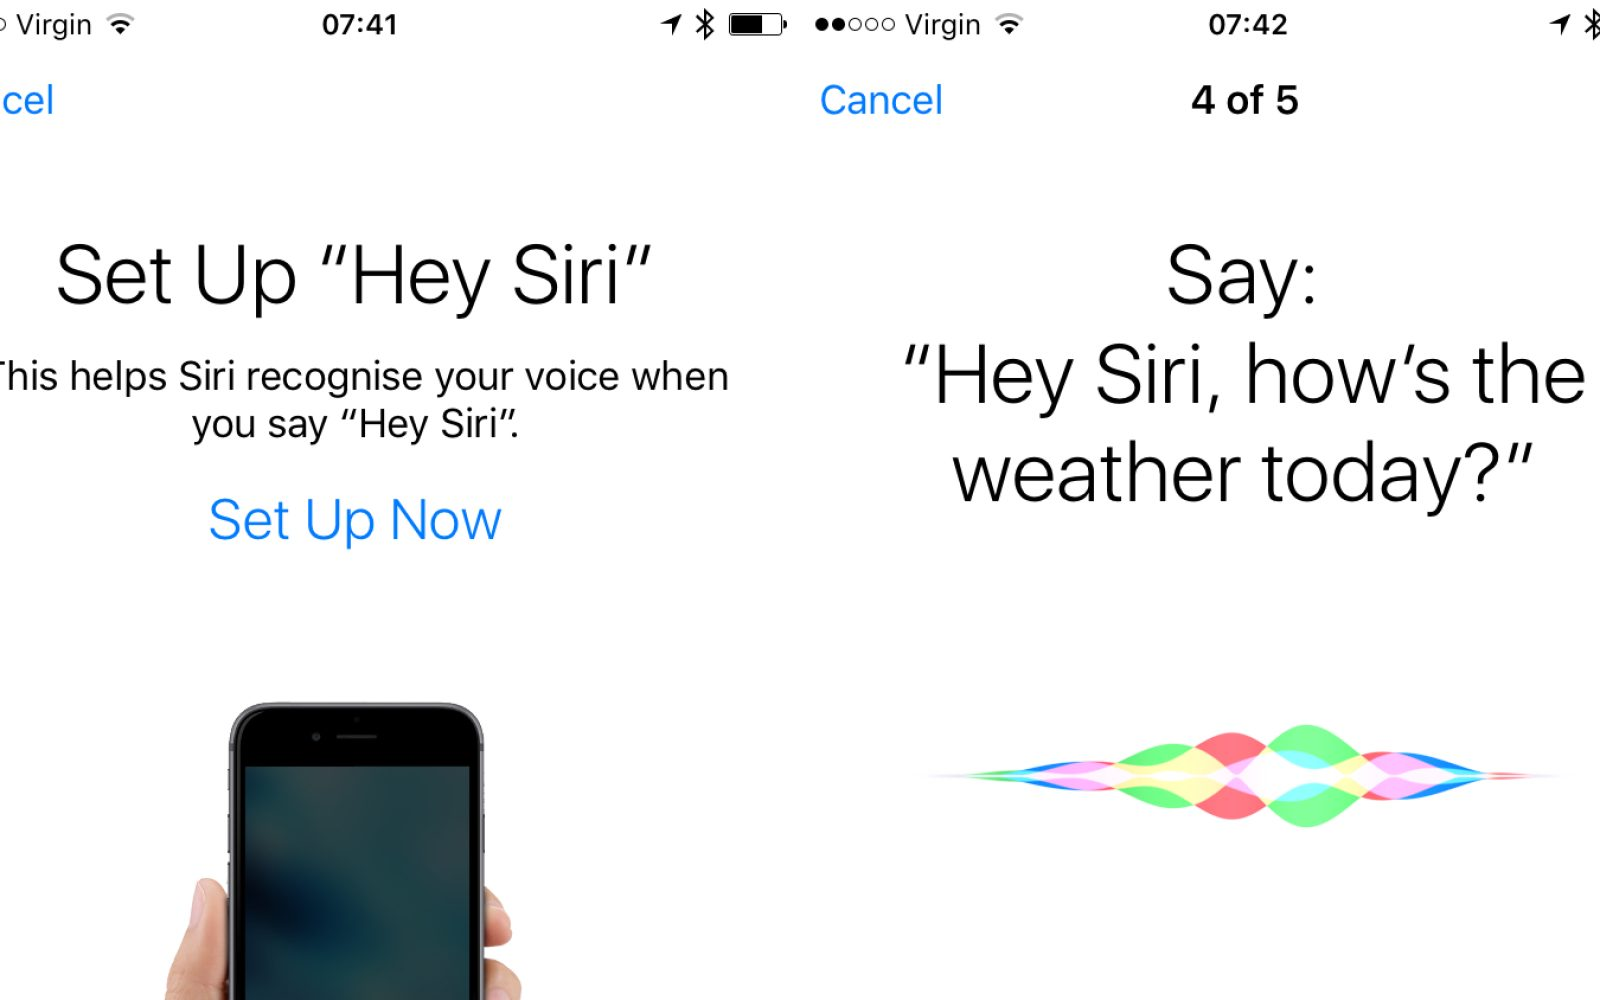 iOS 9 includes 'Hey Siri' voice training to help Siri better recognize your voice